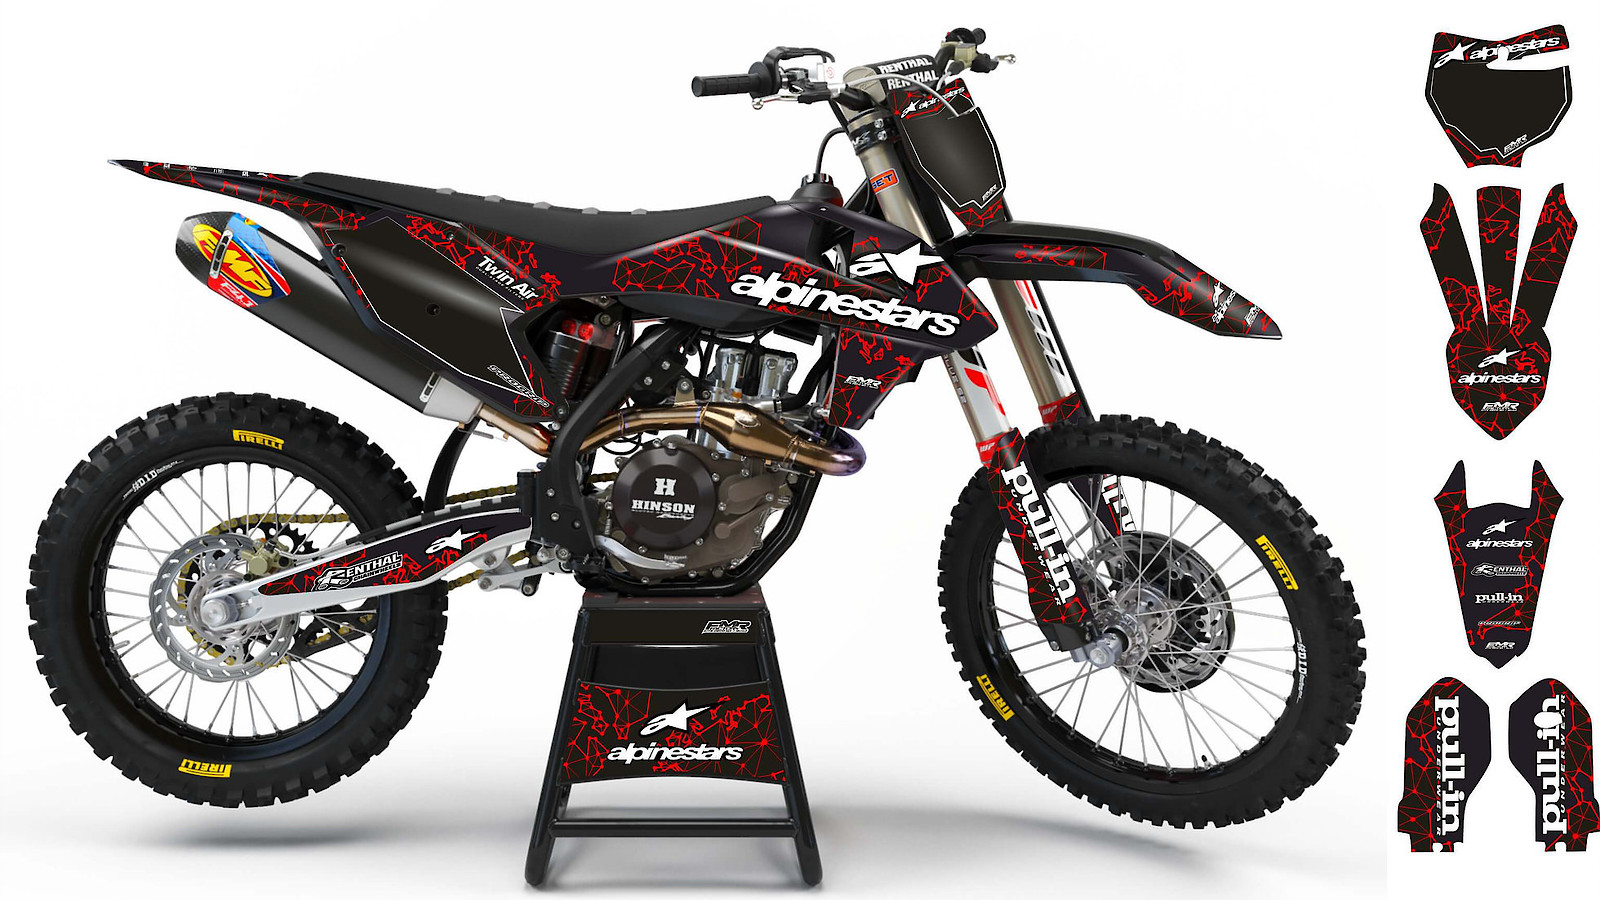 ab0c4b 3ca1544fee43414bb913e070c2122bd1 mv2 d 3075 1779 s 2 - cgmx - Motocross Pictures - Vital MX